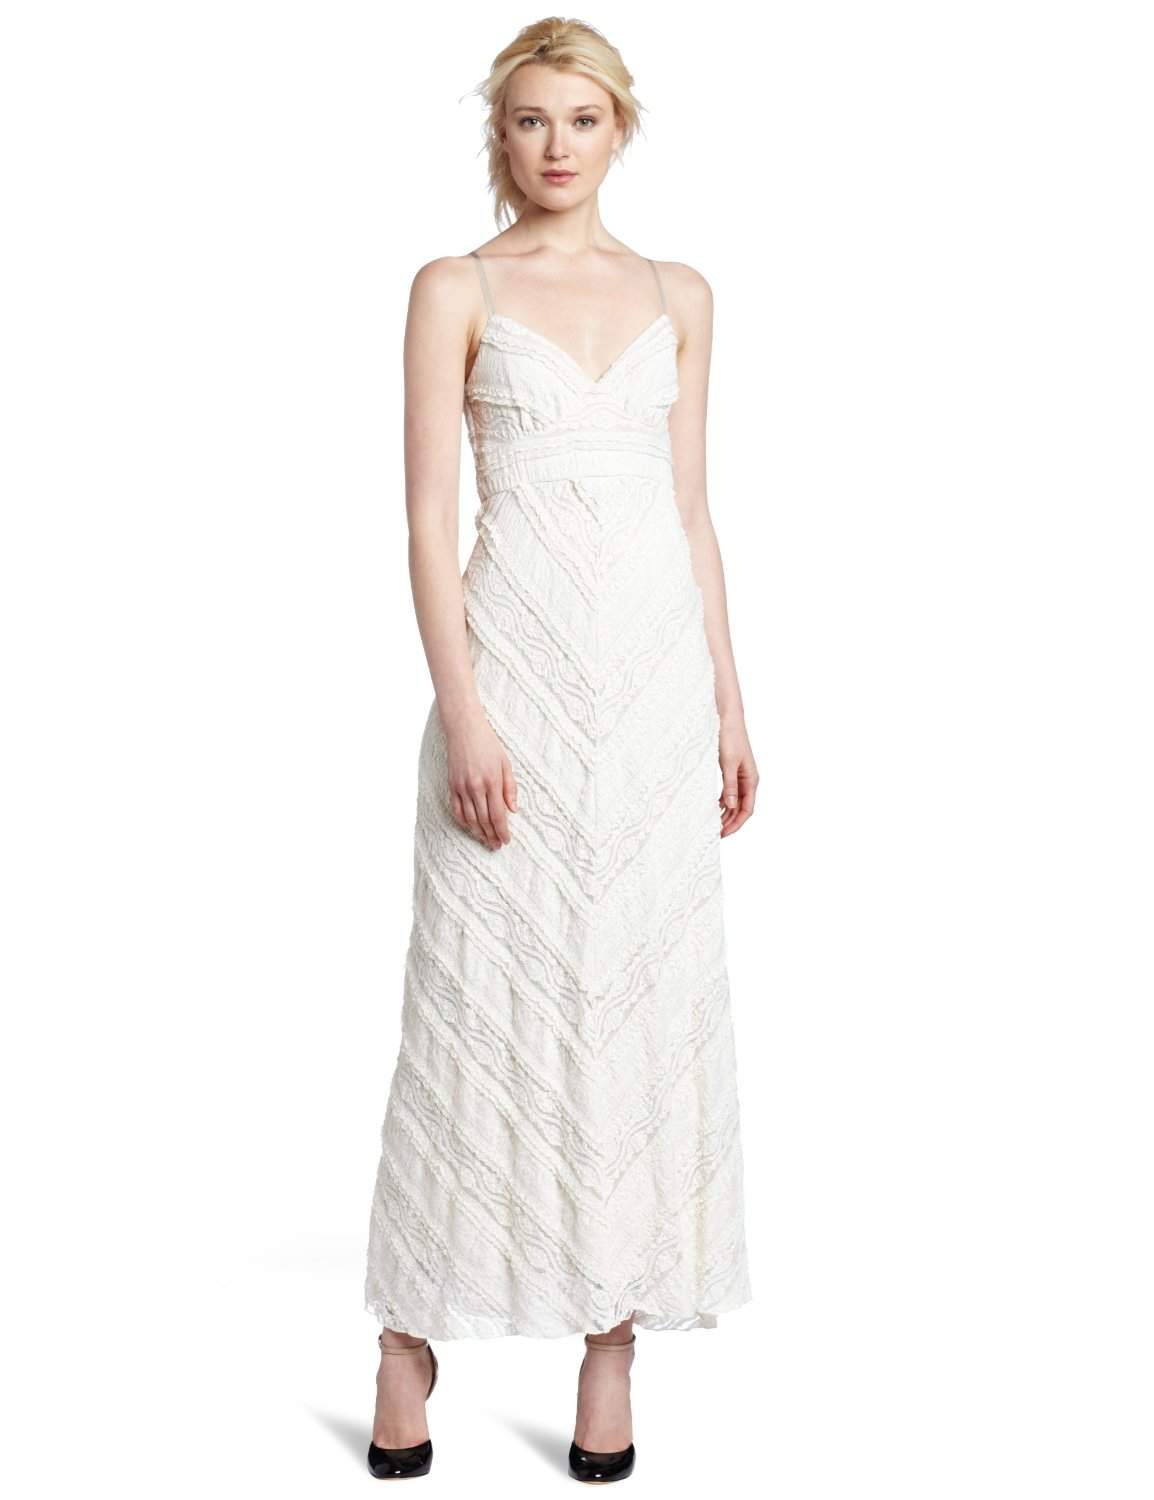 Lace Maxi Dress Picture Collection